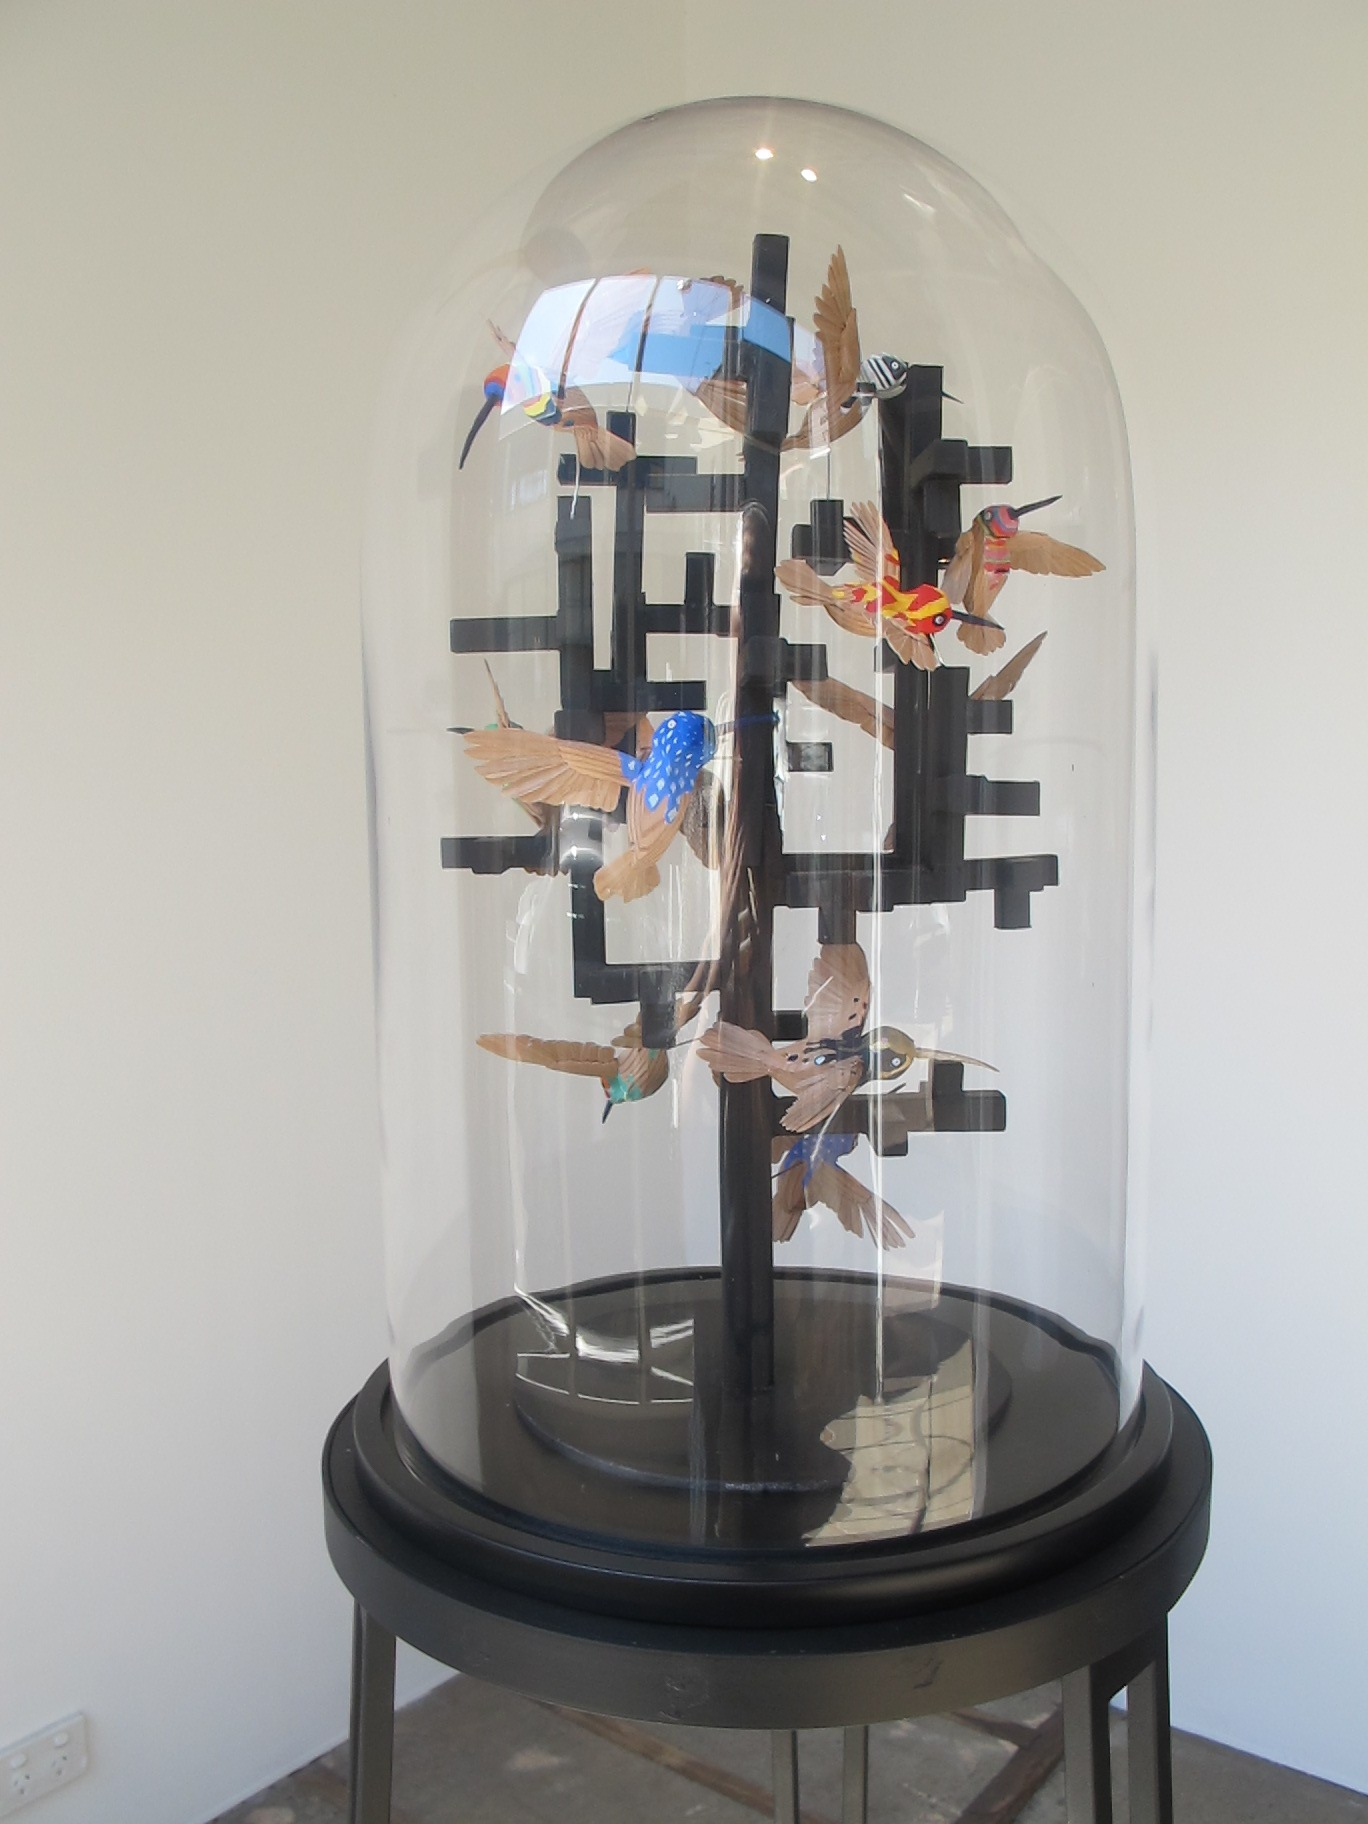 Simon MacEwan,  Peace through understanding , 2011, steel, handcrafted cedar birds, gouache, glass dome, 160 x 40 x 40cm